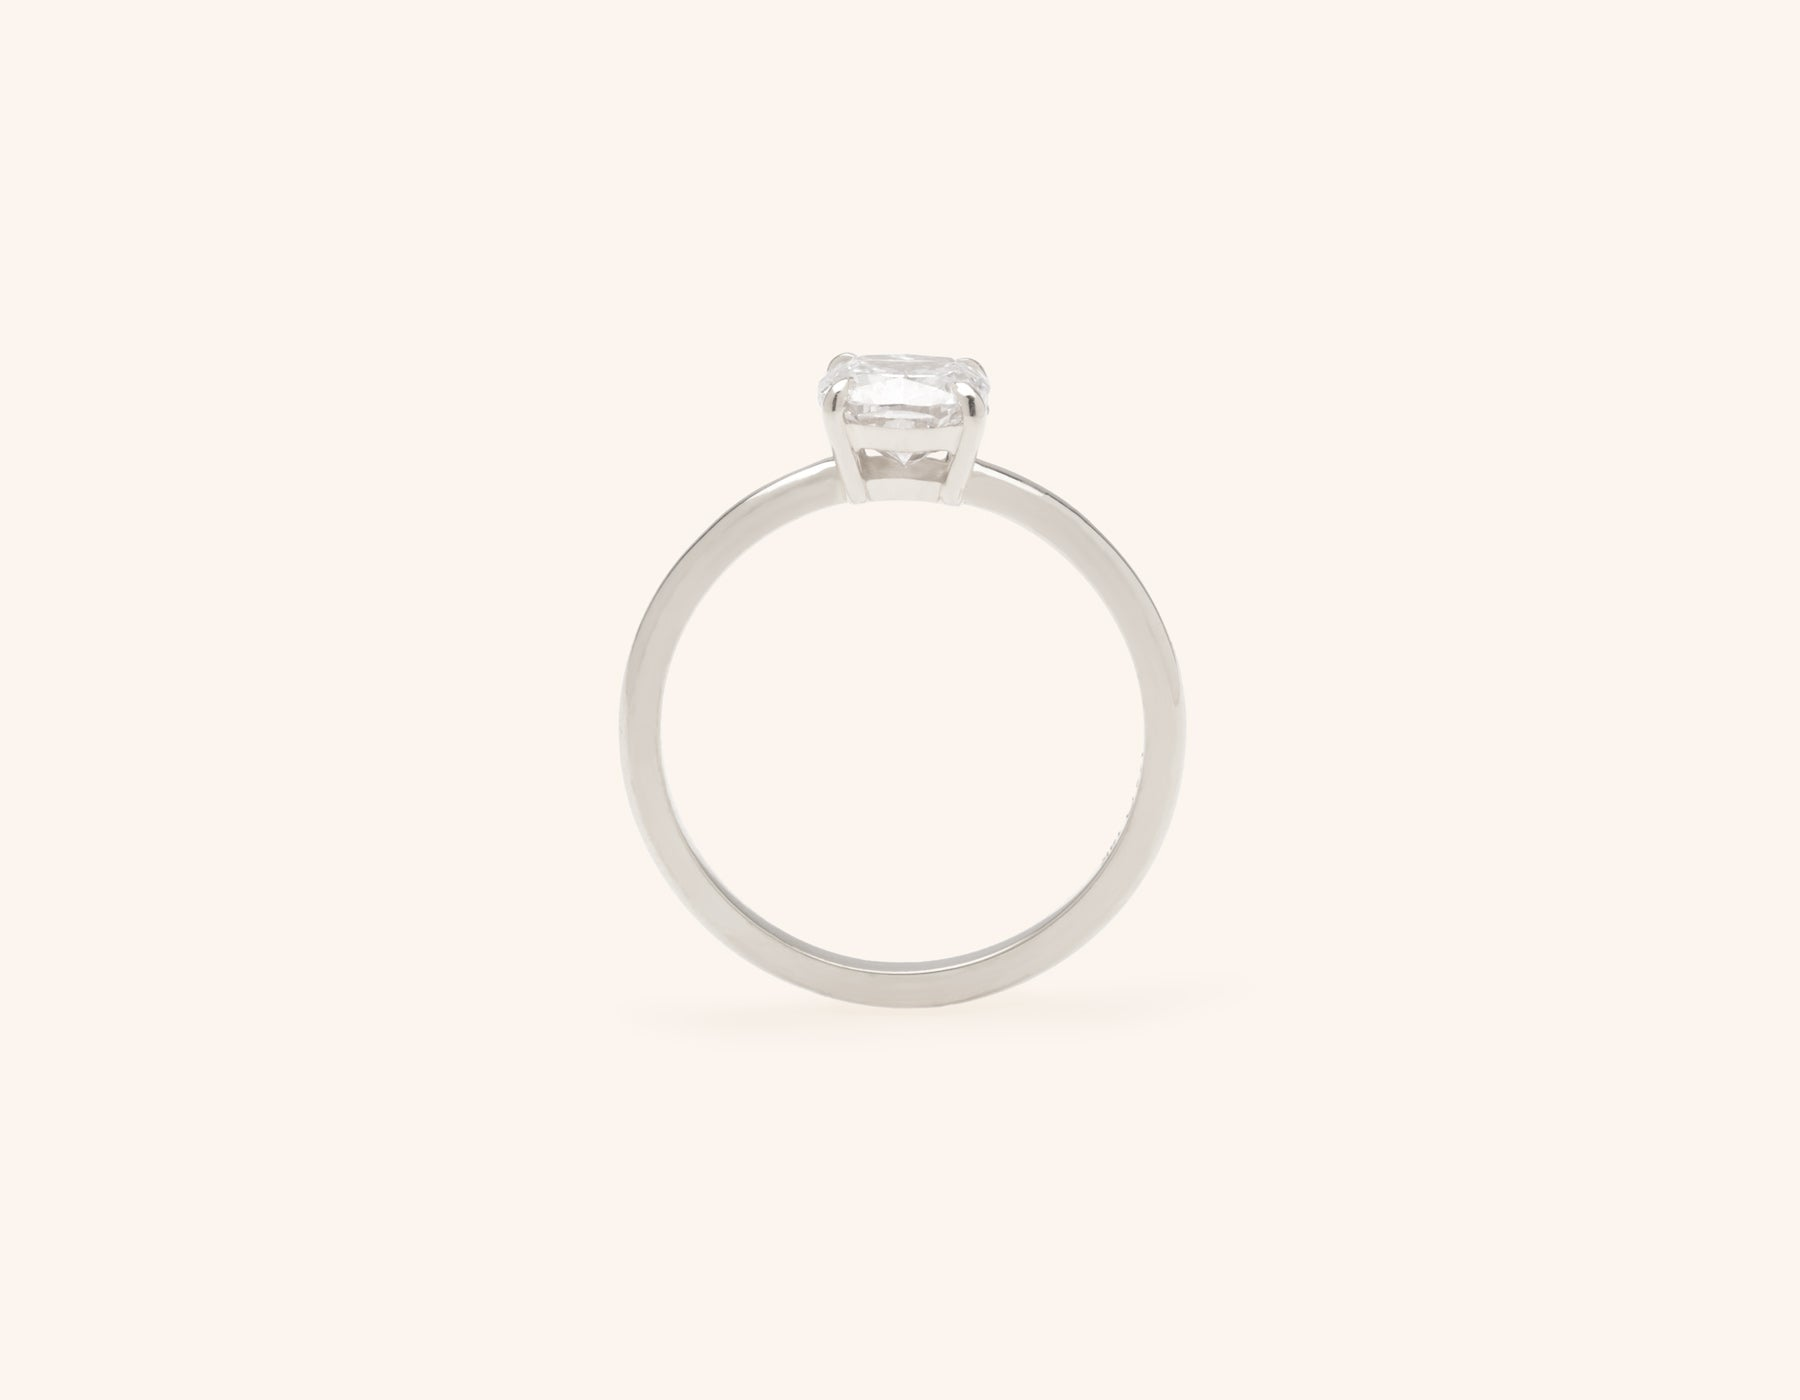 Vrai and Oro modern classic The Cushion diamond engagement ring 18k solid white gold sustainable jewelry